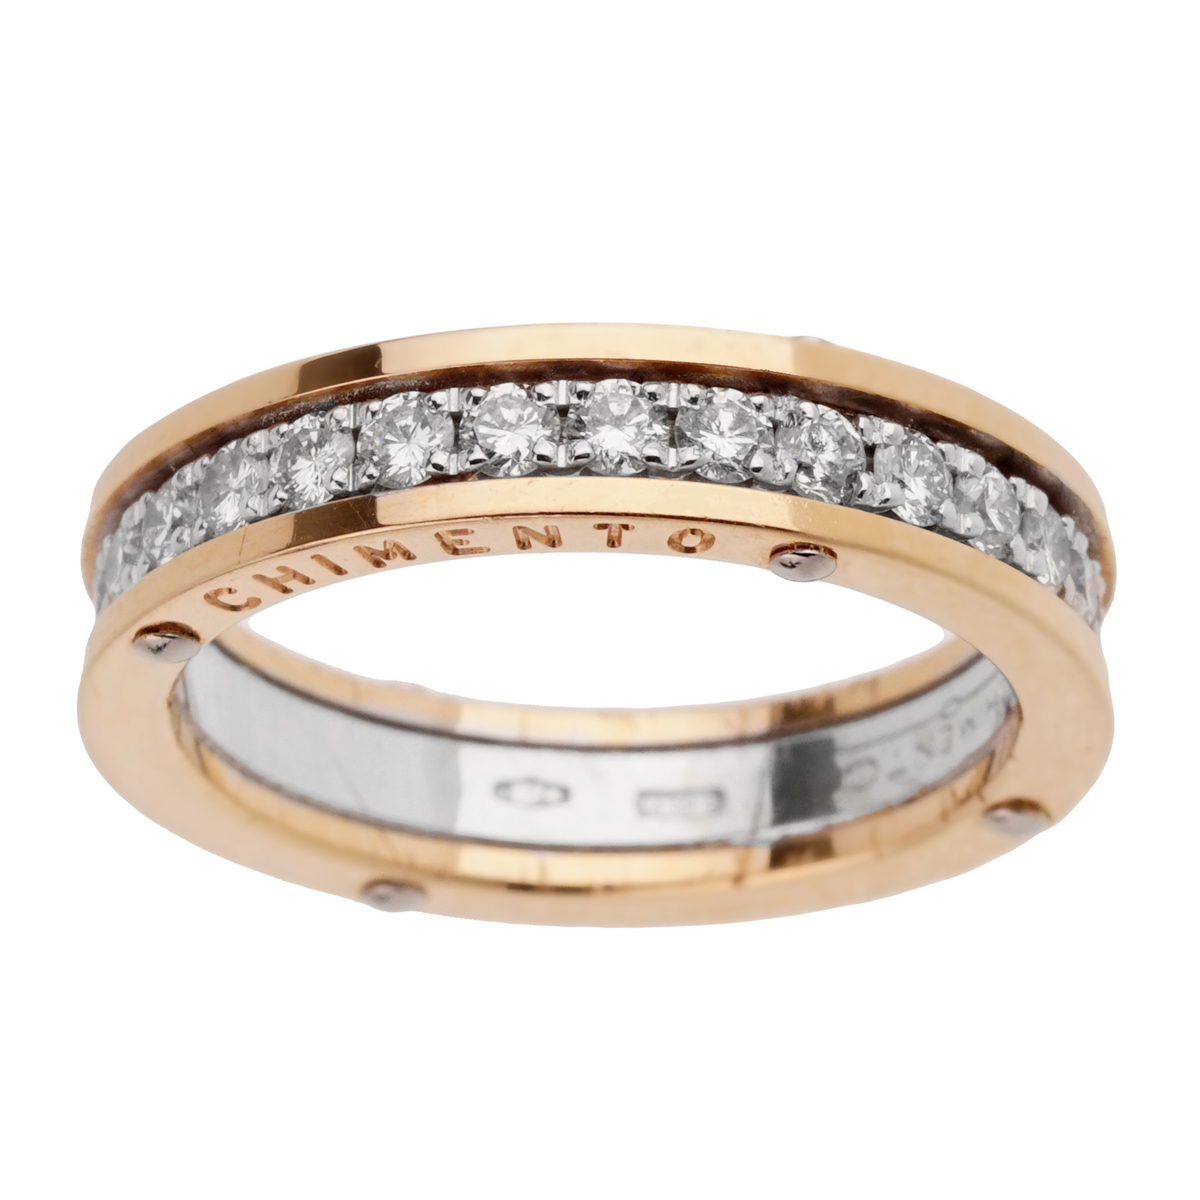 Chimento Diamond Eternity White Gold Ring - Chimento Jewelry